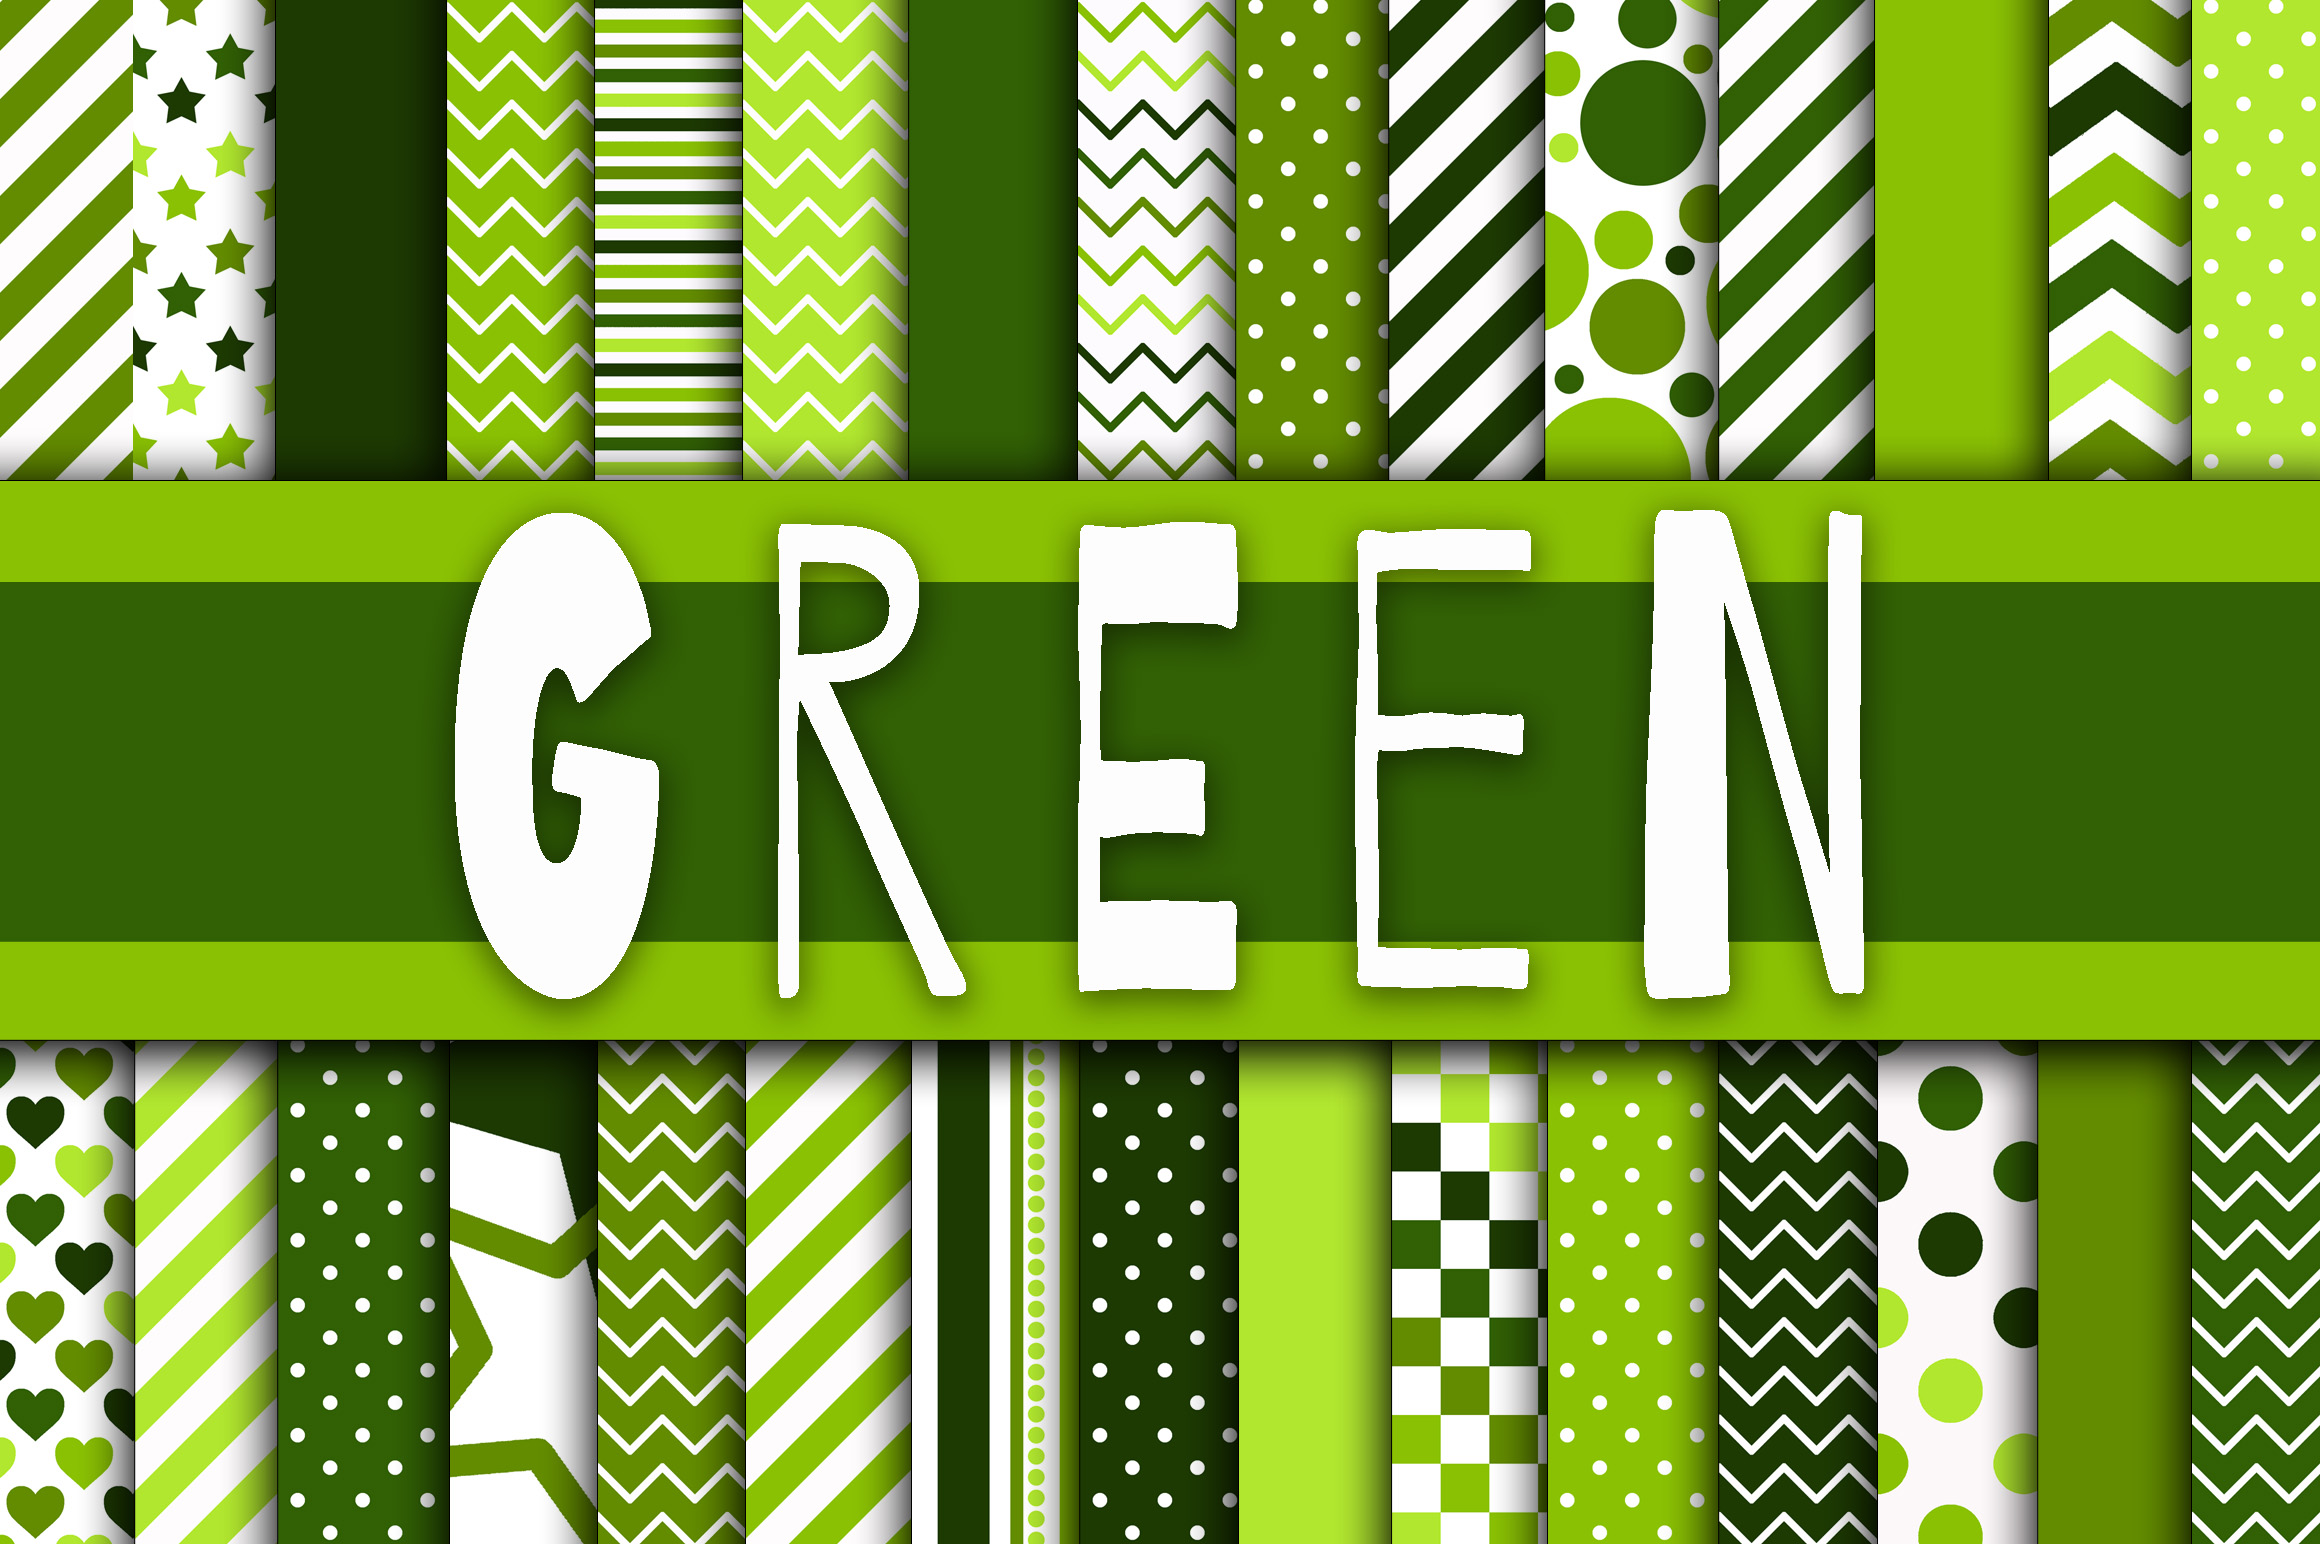 Green Digital Paper Graphic Backgrounds By oldmarketdesigns - Image 1